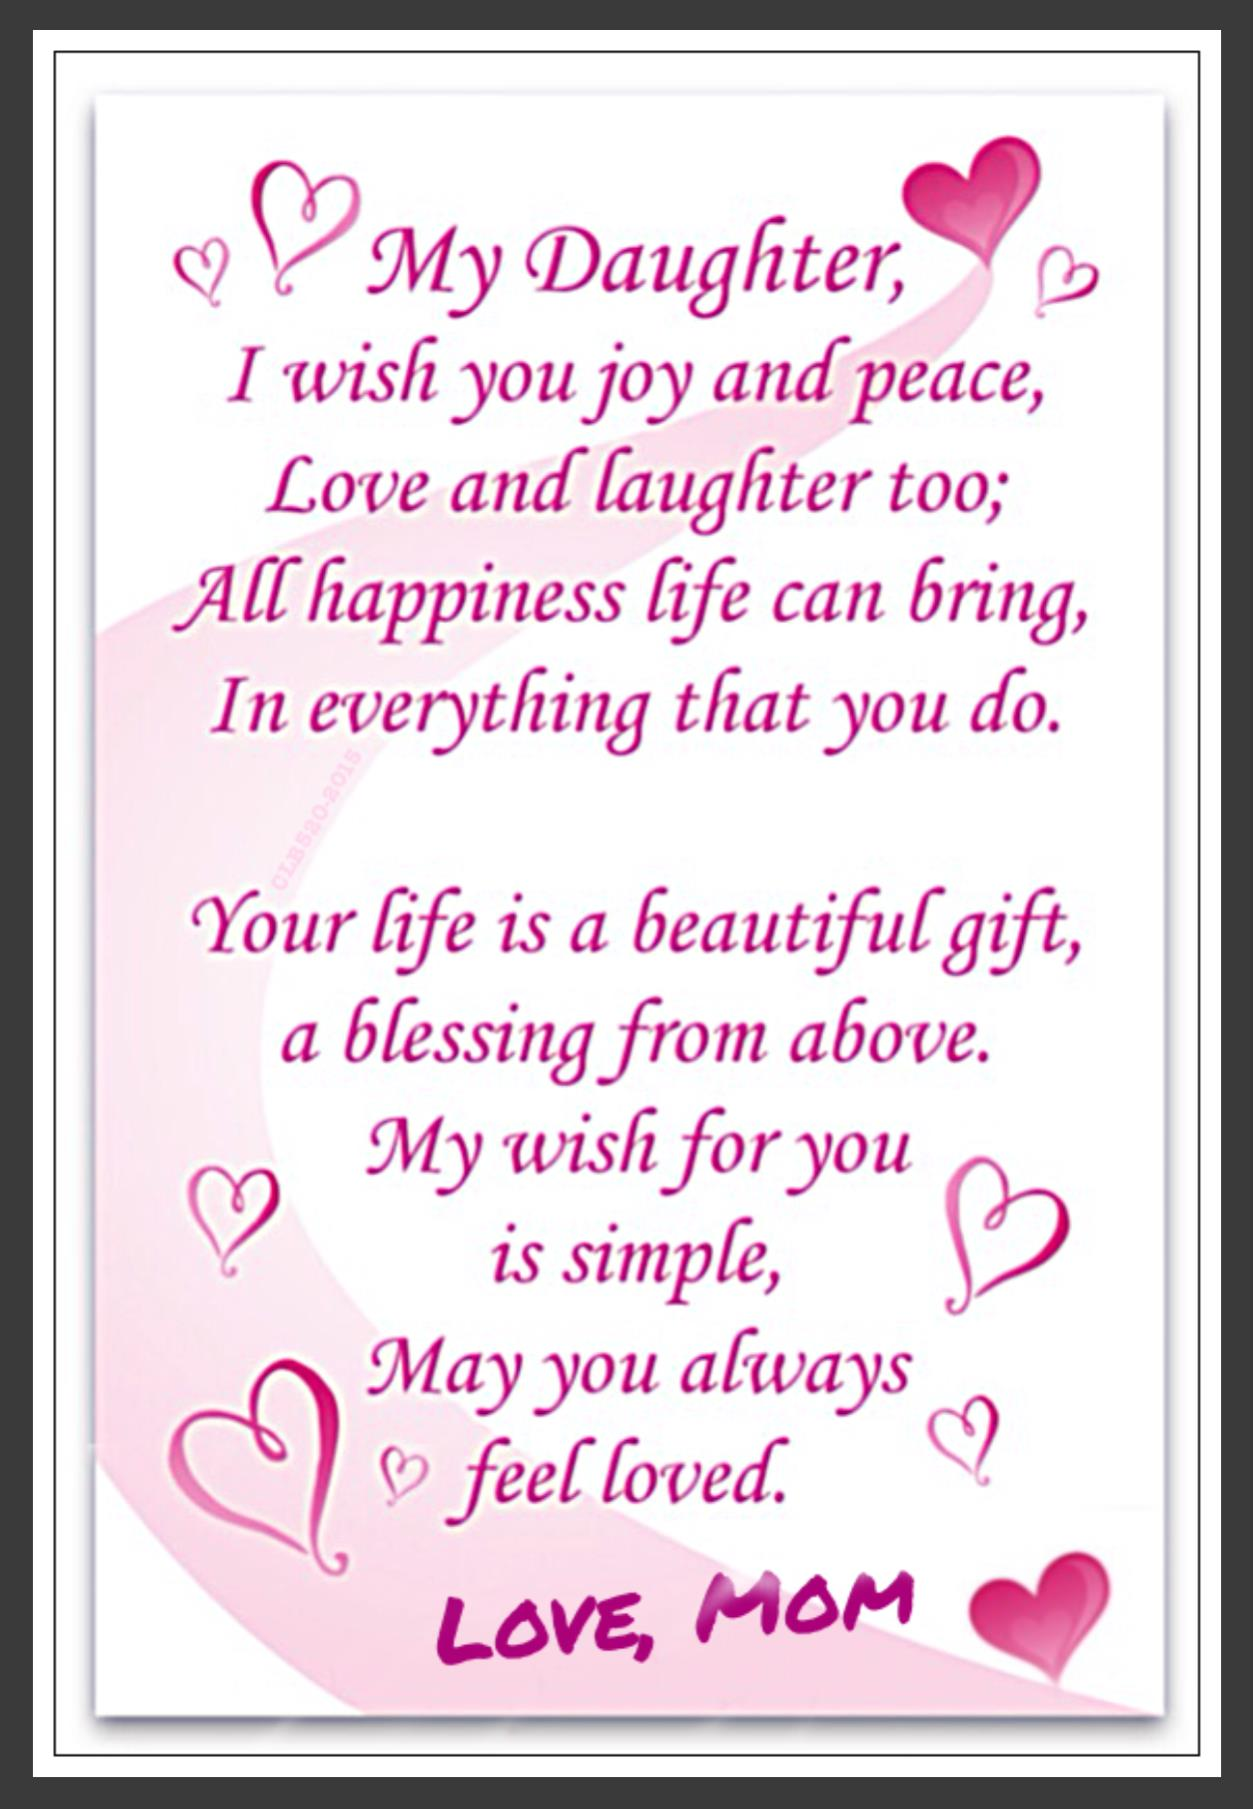 happy birthday daughter quotes ; 60e632a26d12724dee382d27d6c46169